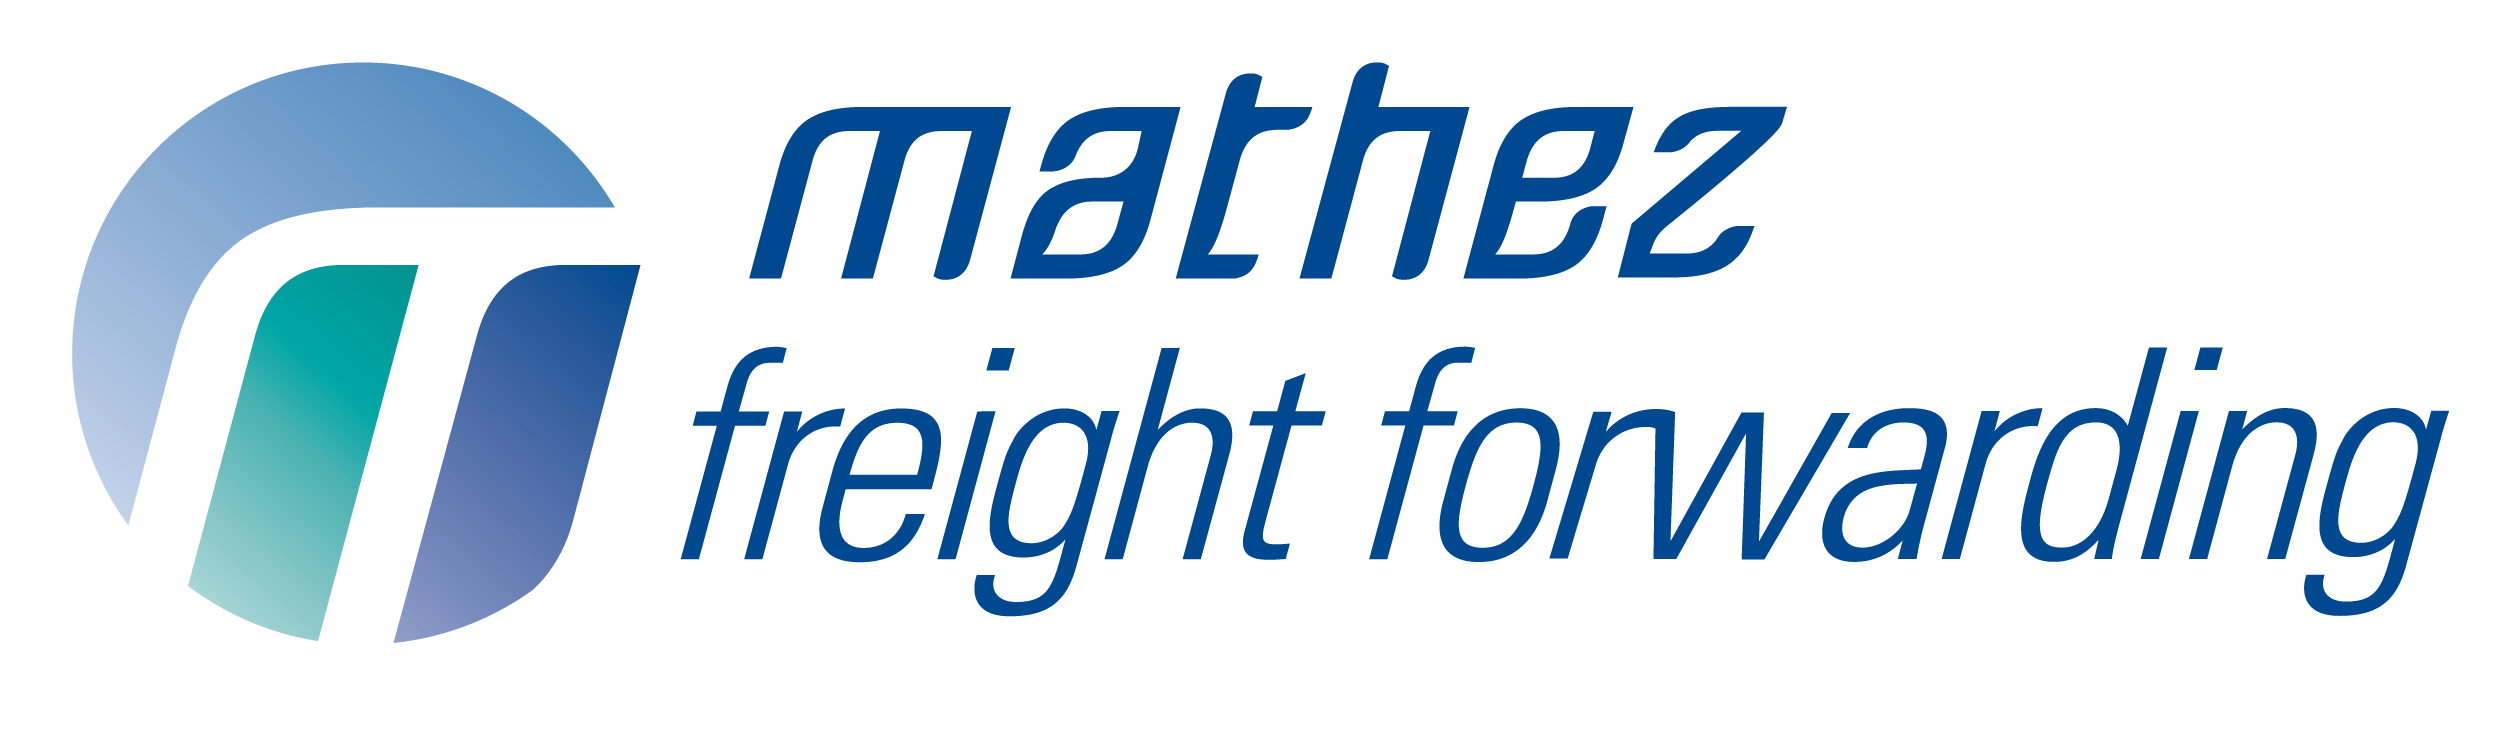 logo-On Site Mathez